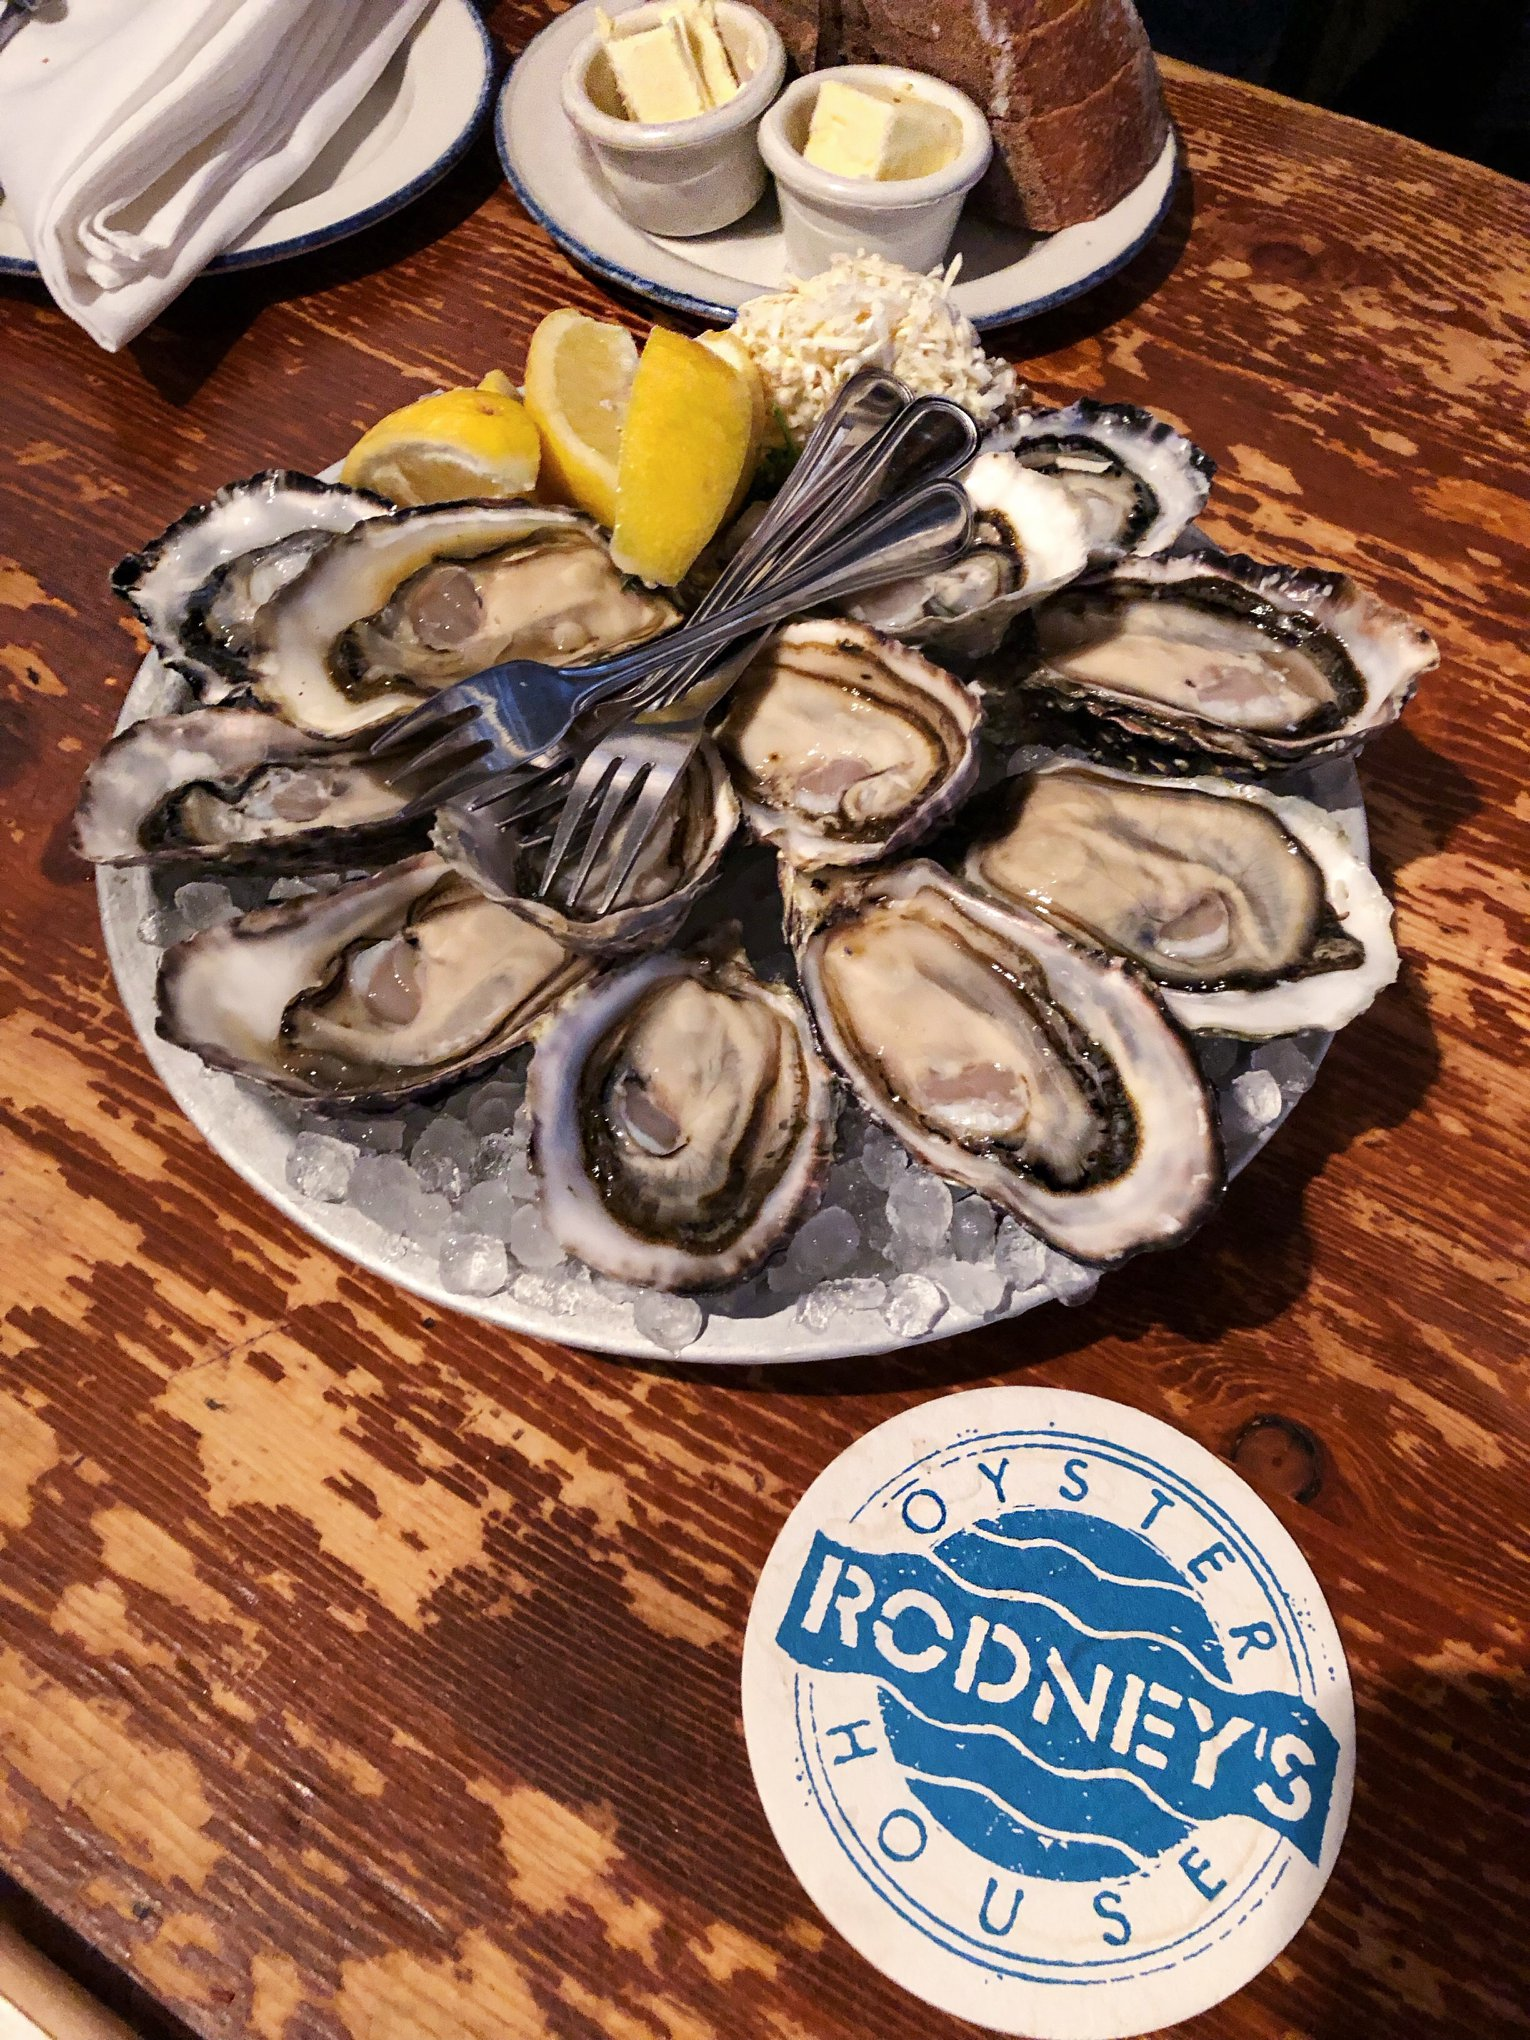 Austern in Rodneys Oyster House in Vancouver